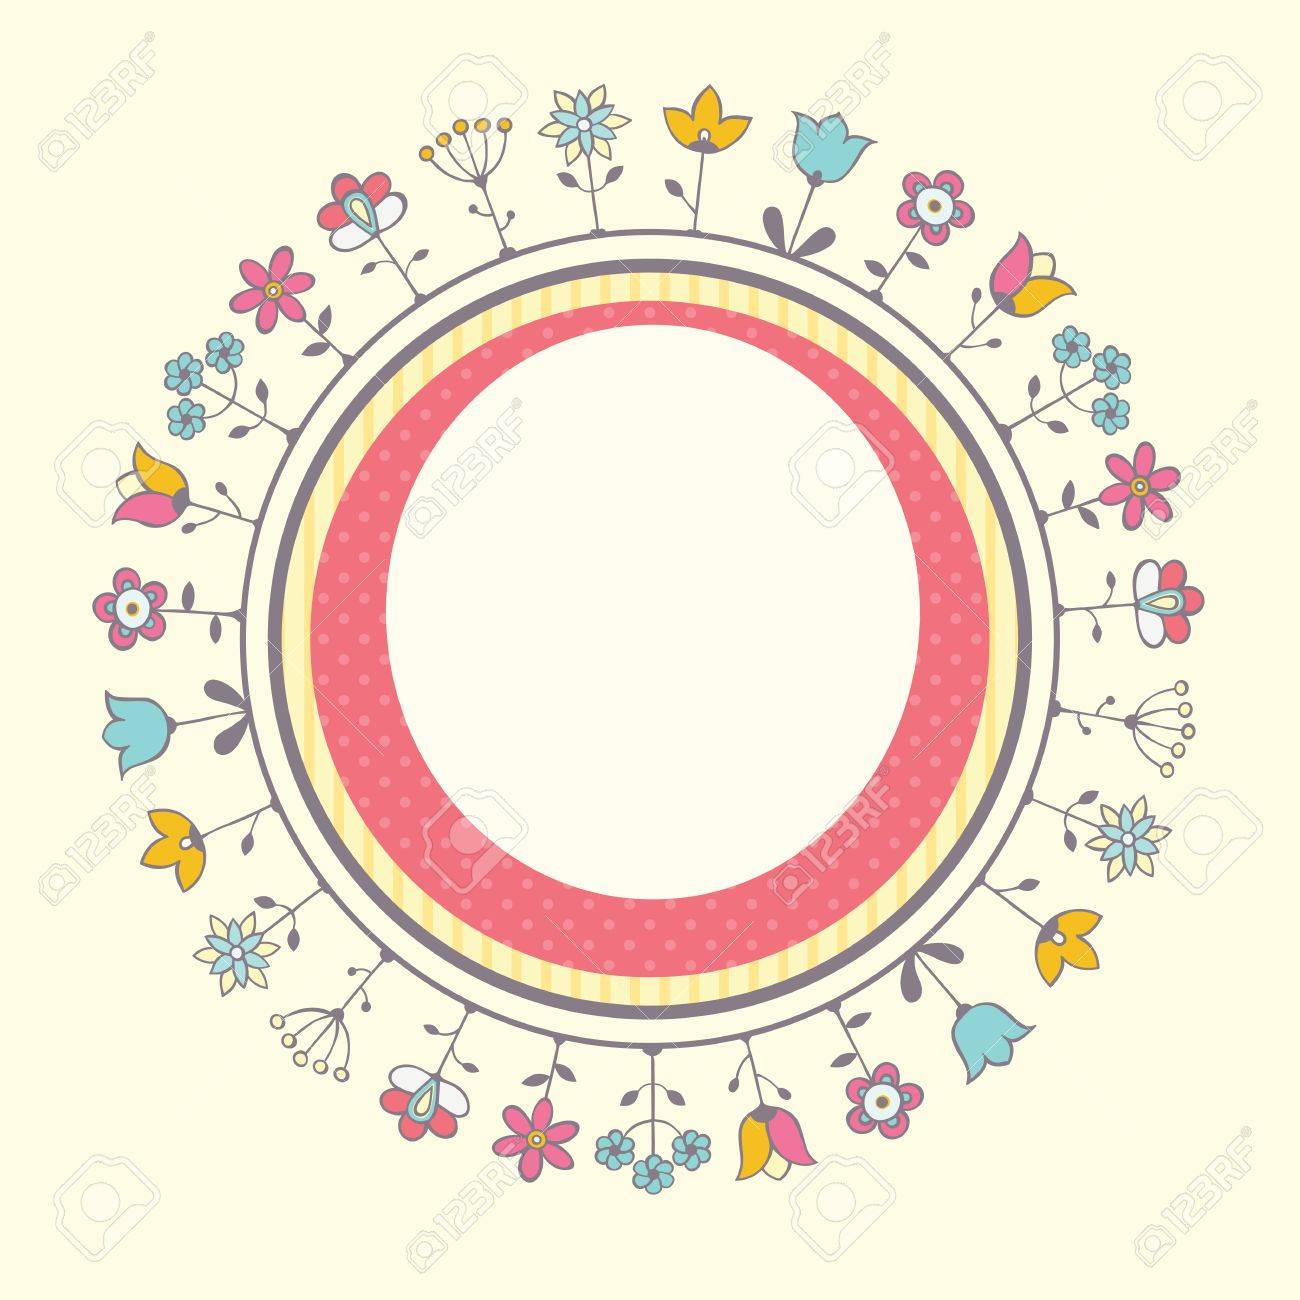 Baby Shower Card Template With Floral Frame. Stock Vector   26530429